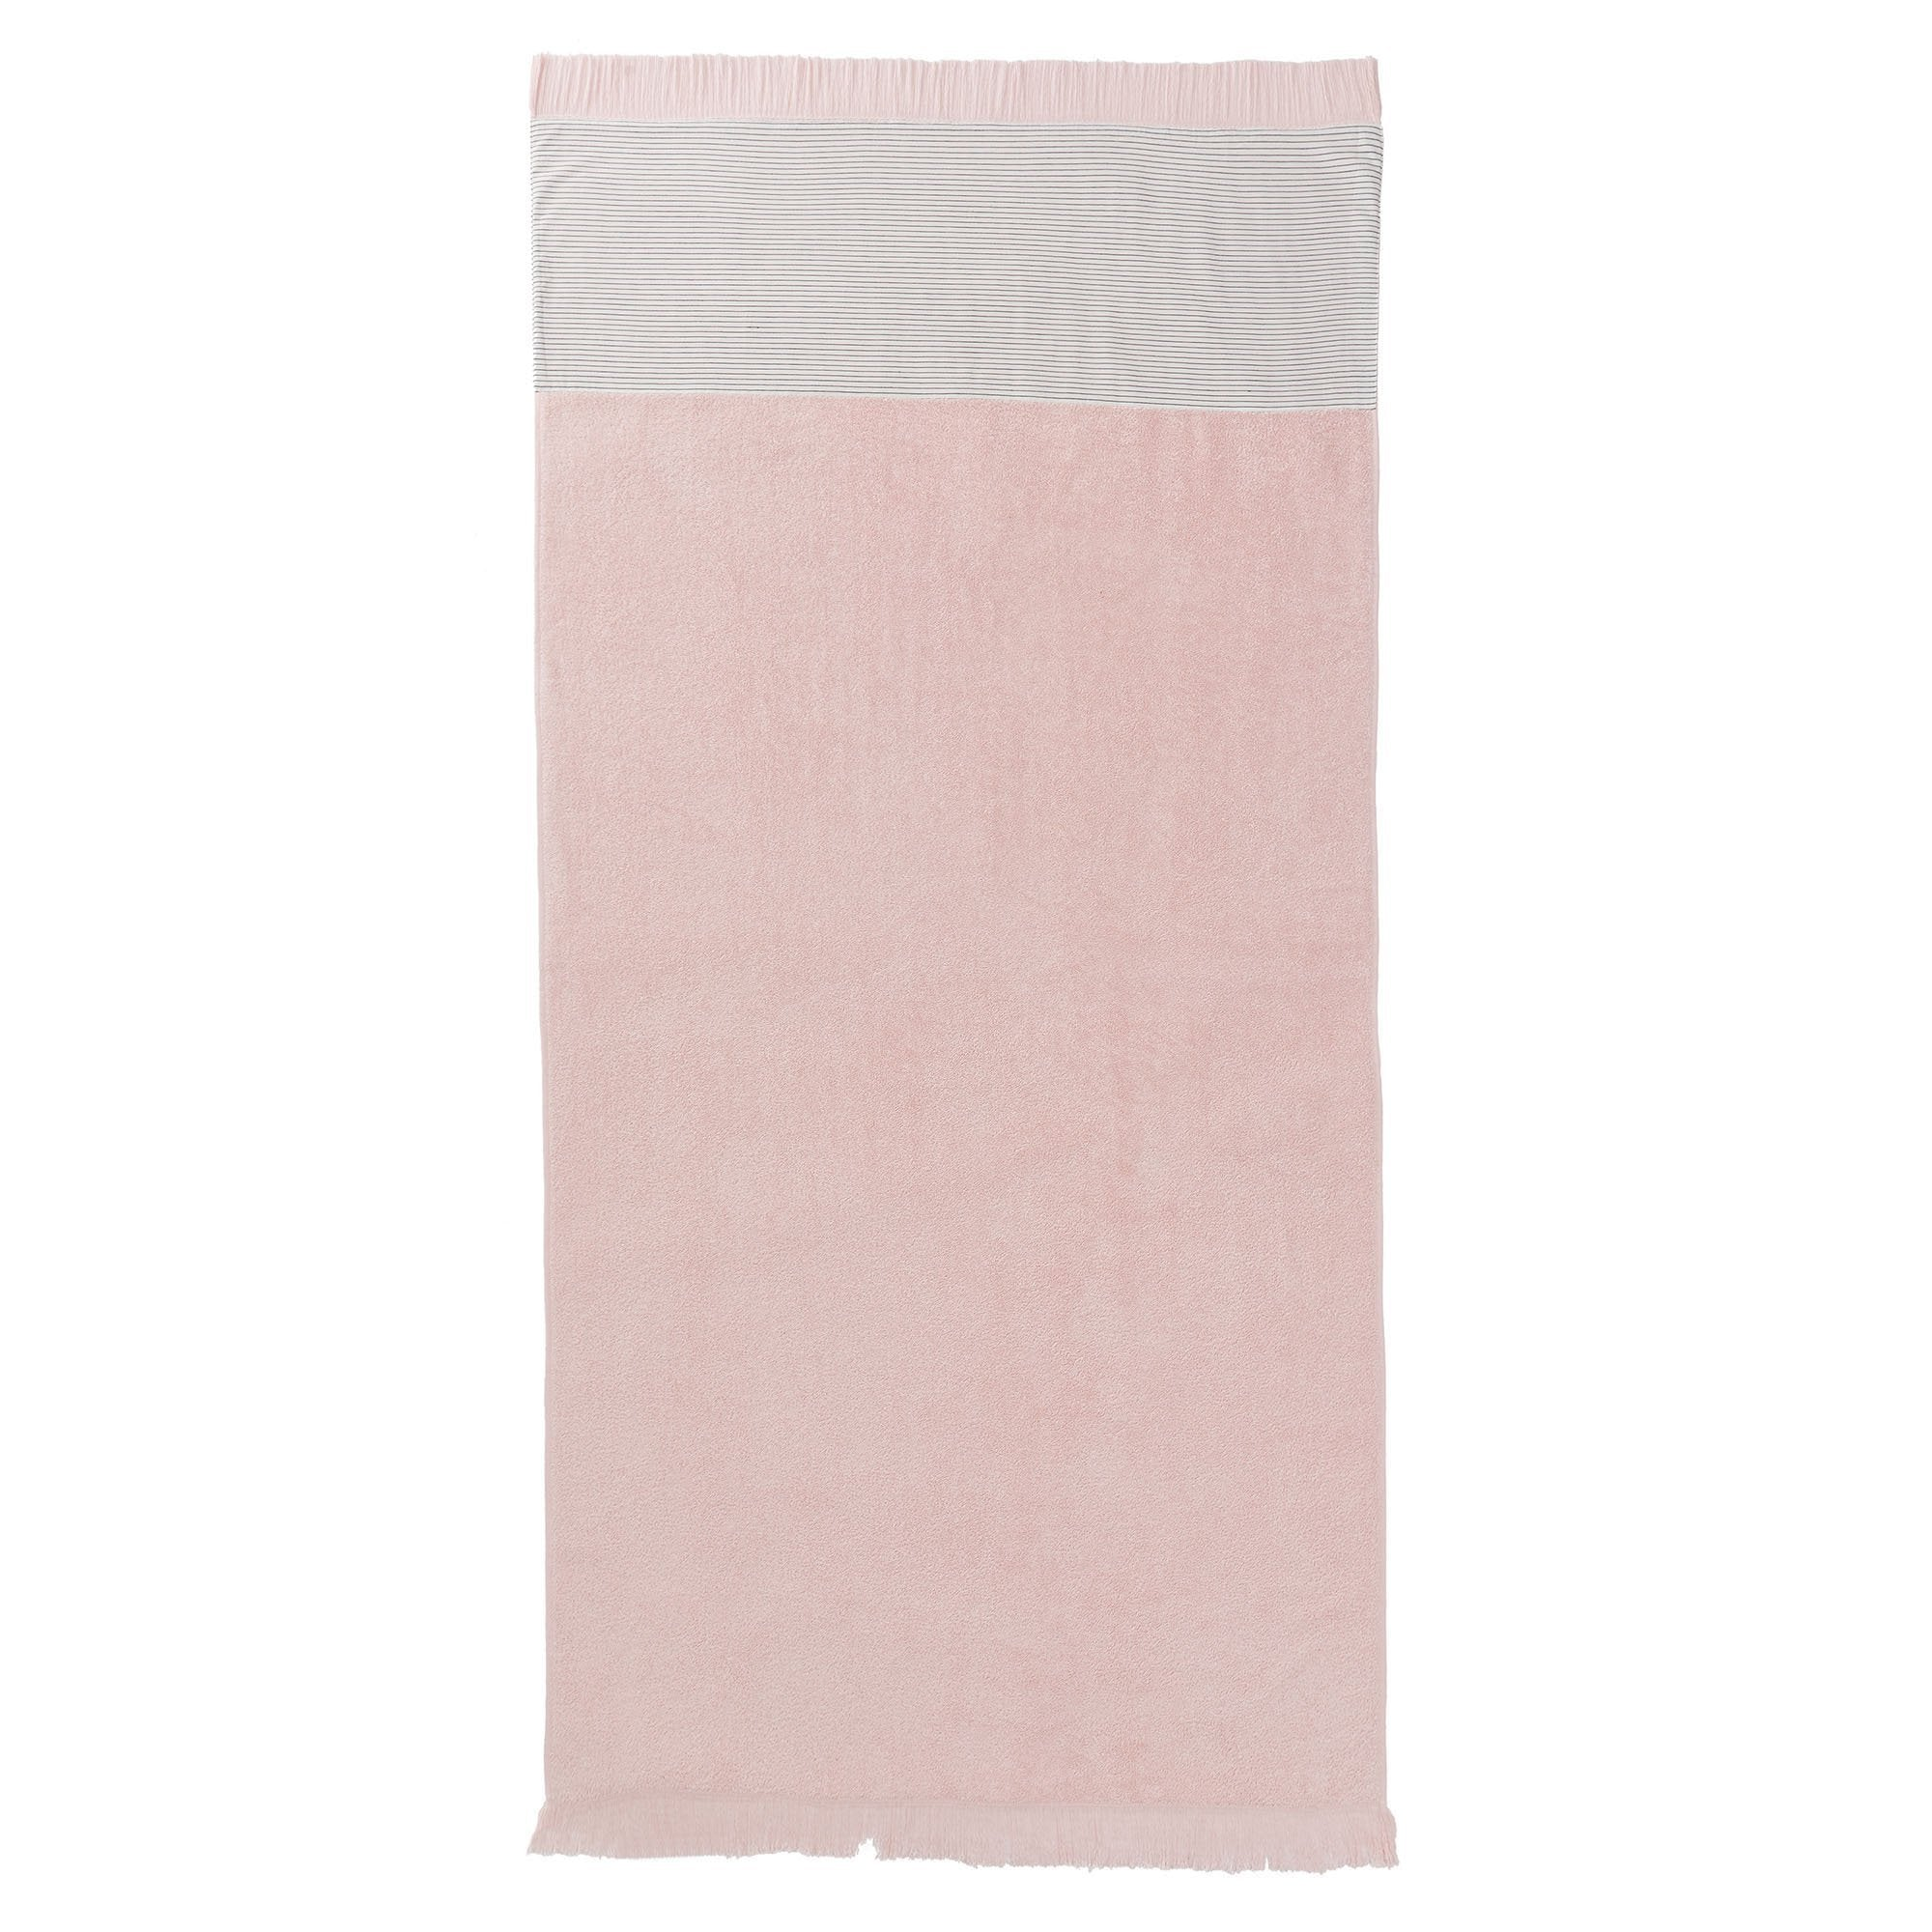 Luni beach towel, light pink, 100% cotton